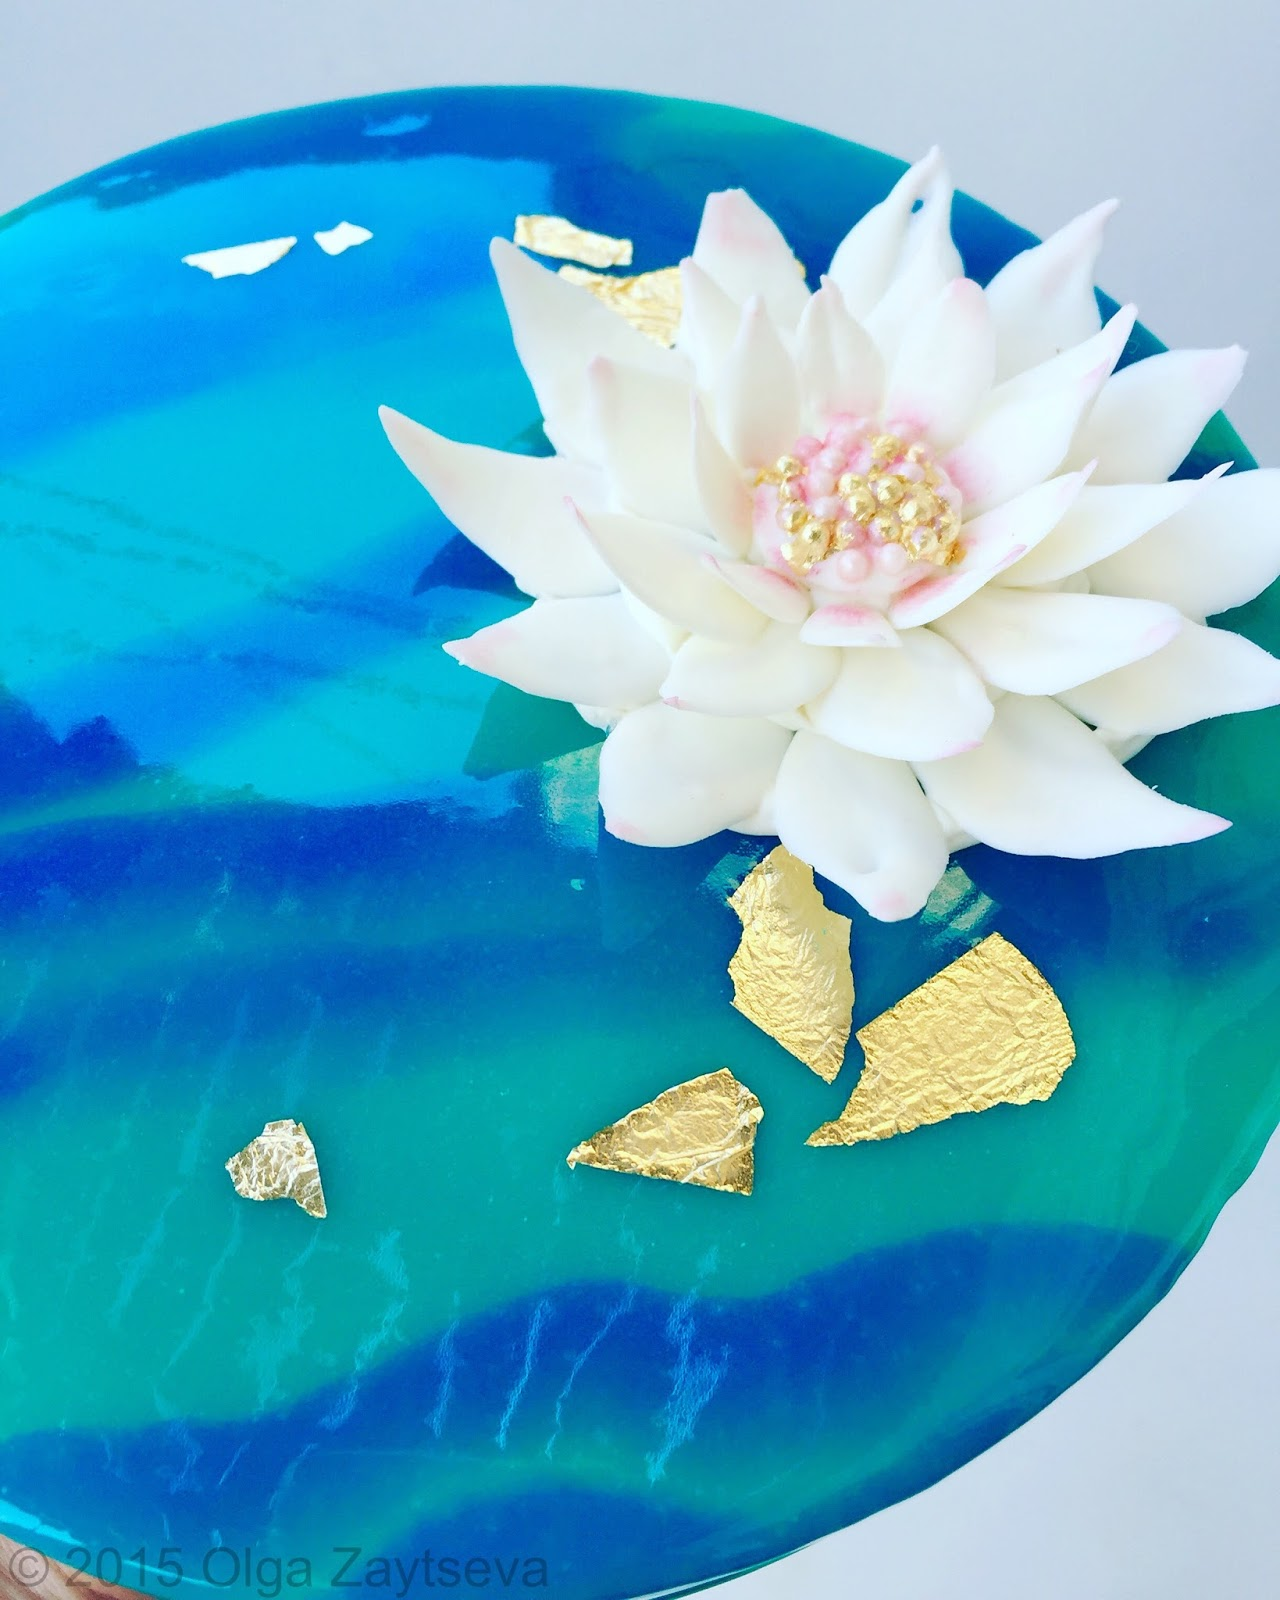 Two tone mirror glaze cake with chocolate water lily flower olga learn how to make this trendy cake with a mirror effect a two tone mirror glaze cake with chocolate water lily flower izmirmasajfo Gallery